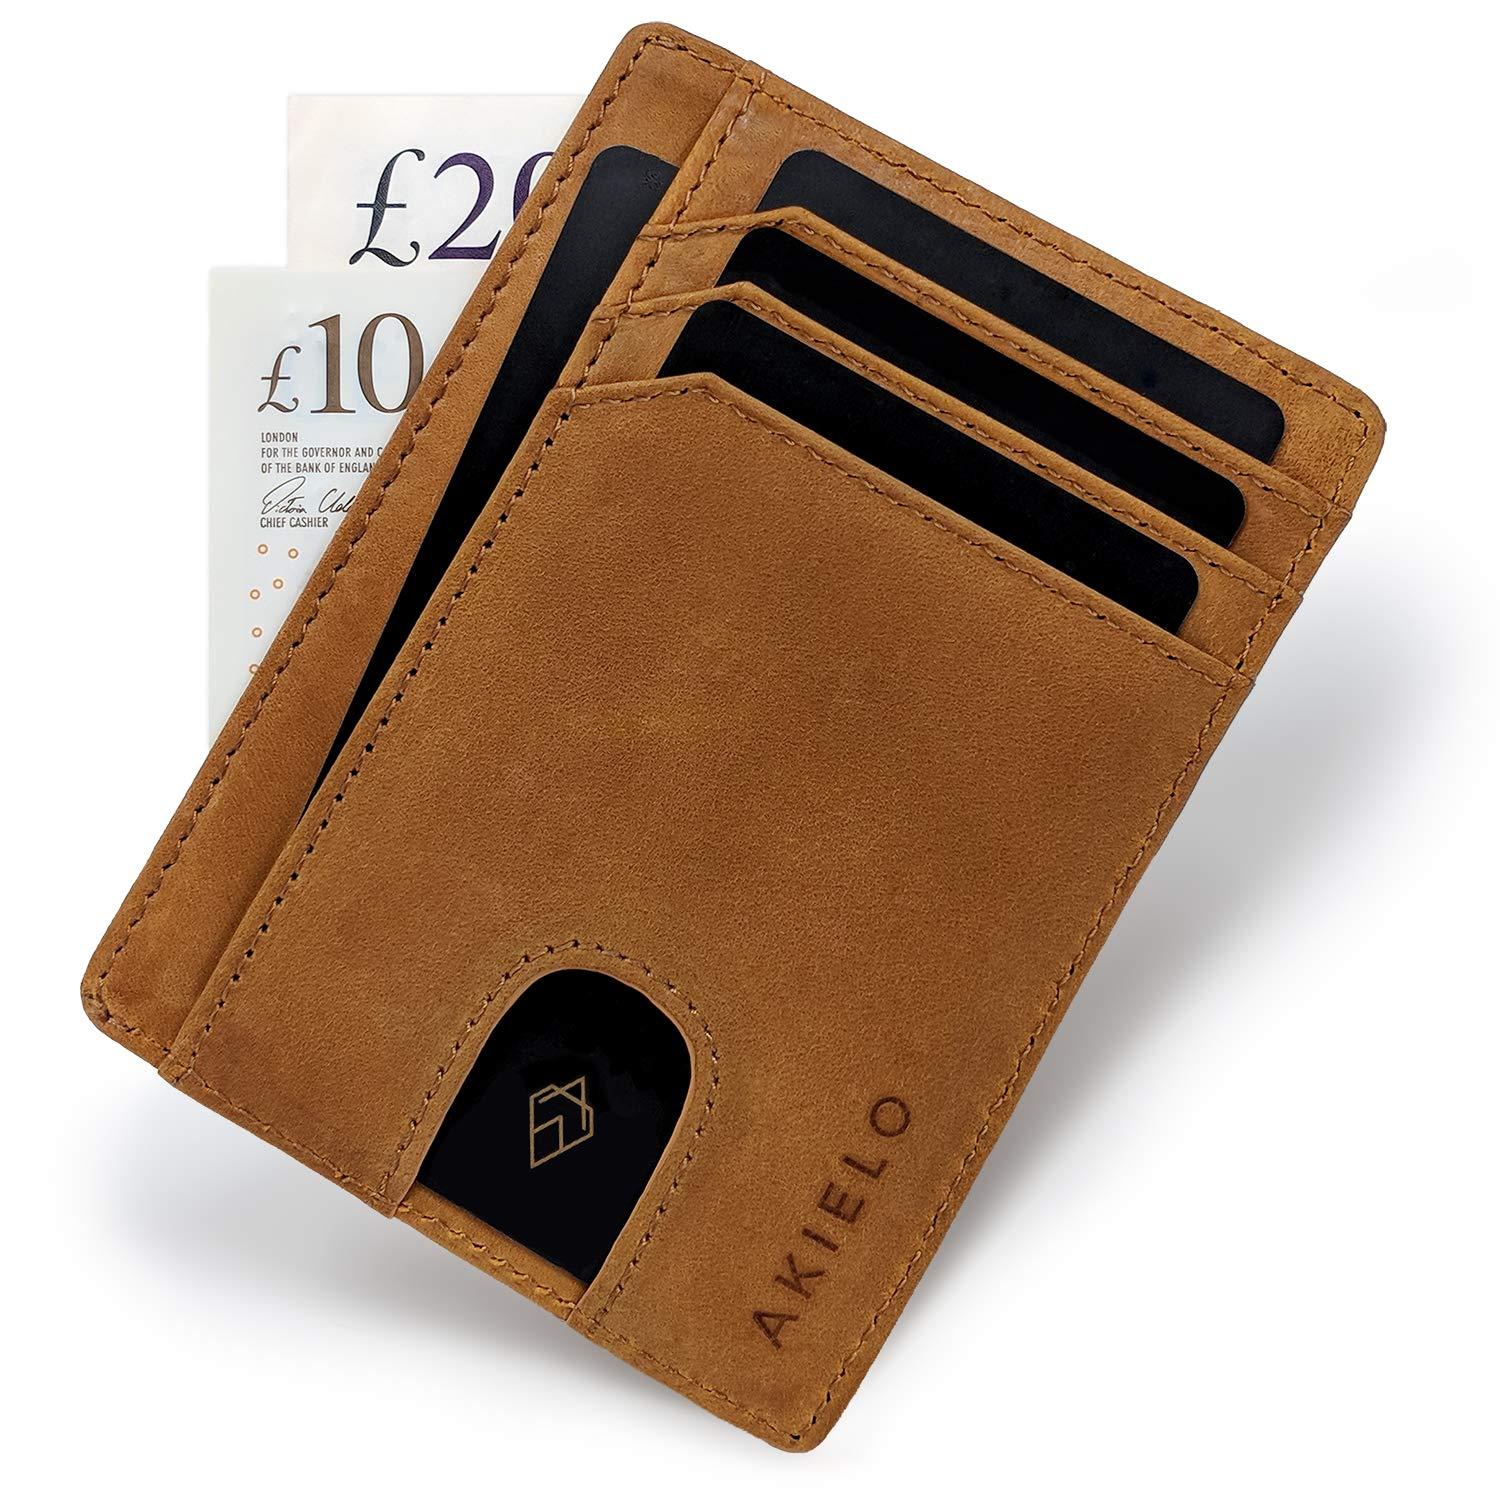 AKIELO Wallet | Minimalist Card Wallet - RFID Blocking Credit Card Holder and Gift Box | Genuine Leather Slim Wallet for Men - Bravo Collection